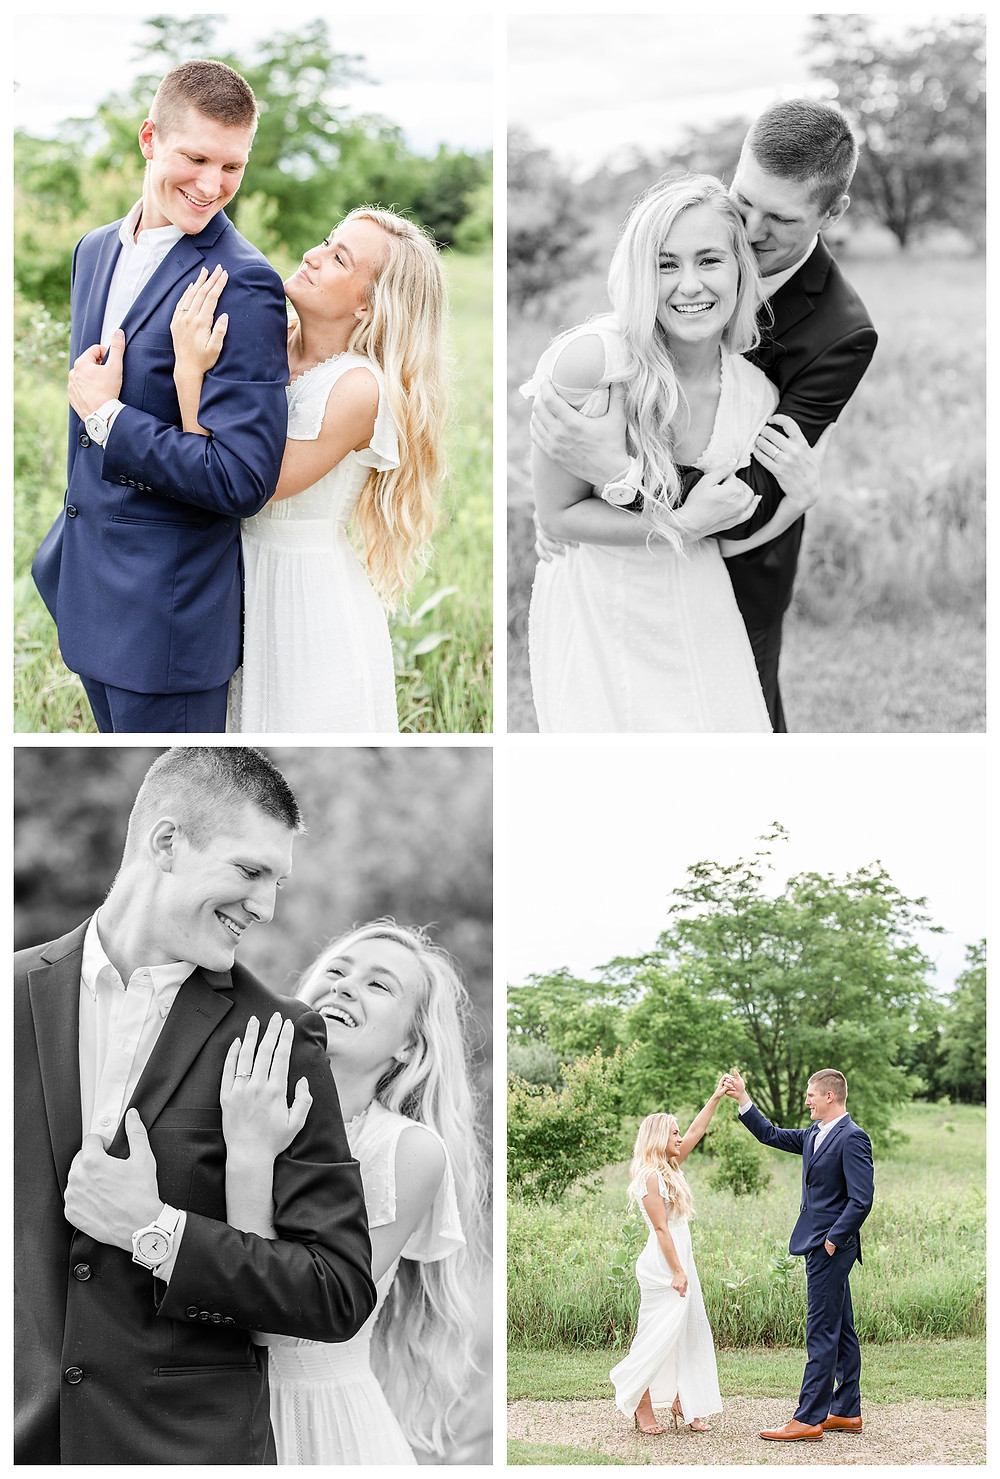 Josh and Andrea wedding photography husband and wife photographer team michigan pictures photo shoot hager park engagement pictures session photo shoot fiance grand rapids laughing dancing